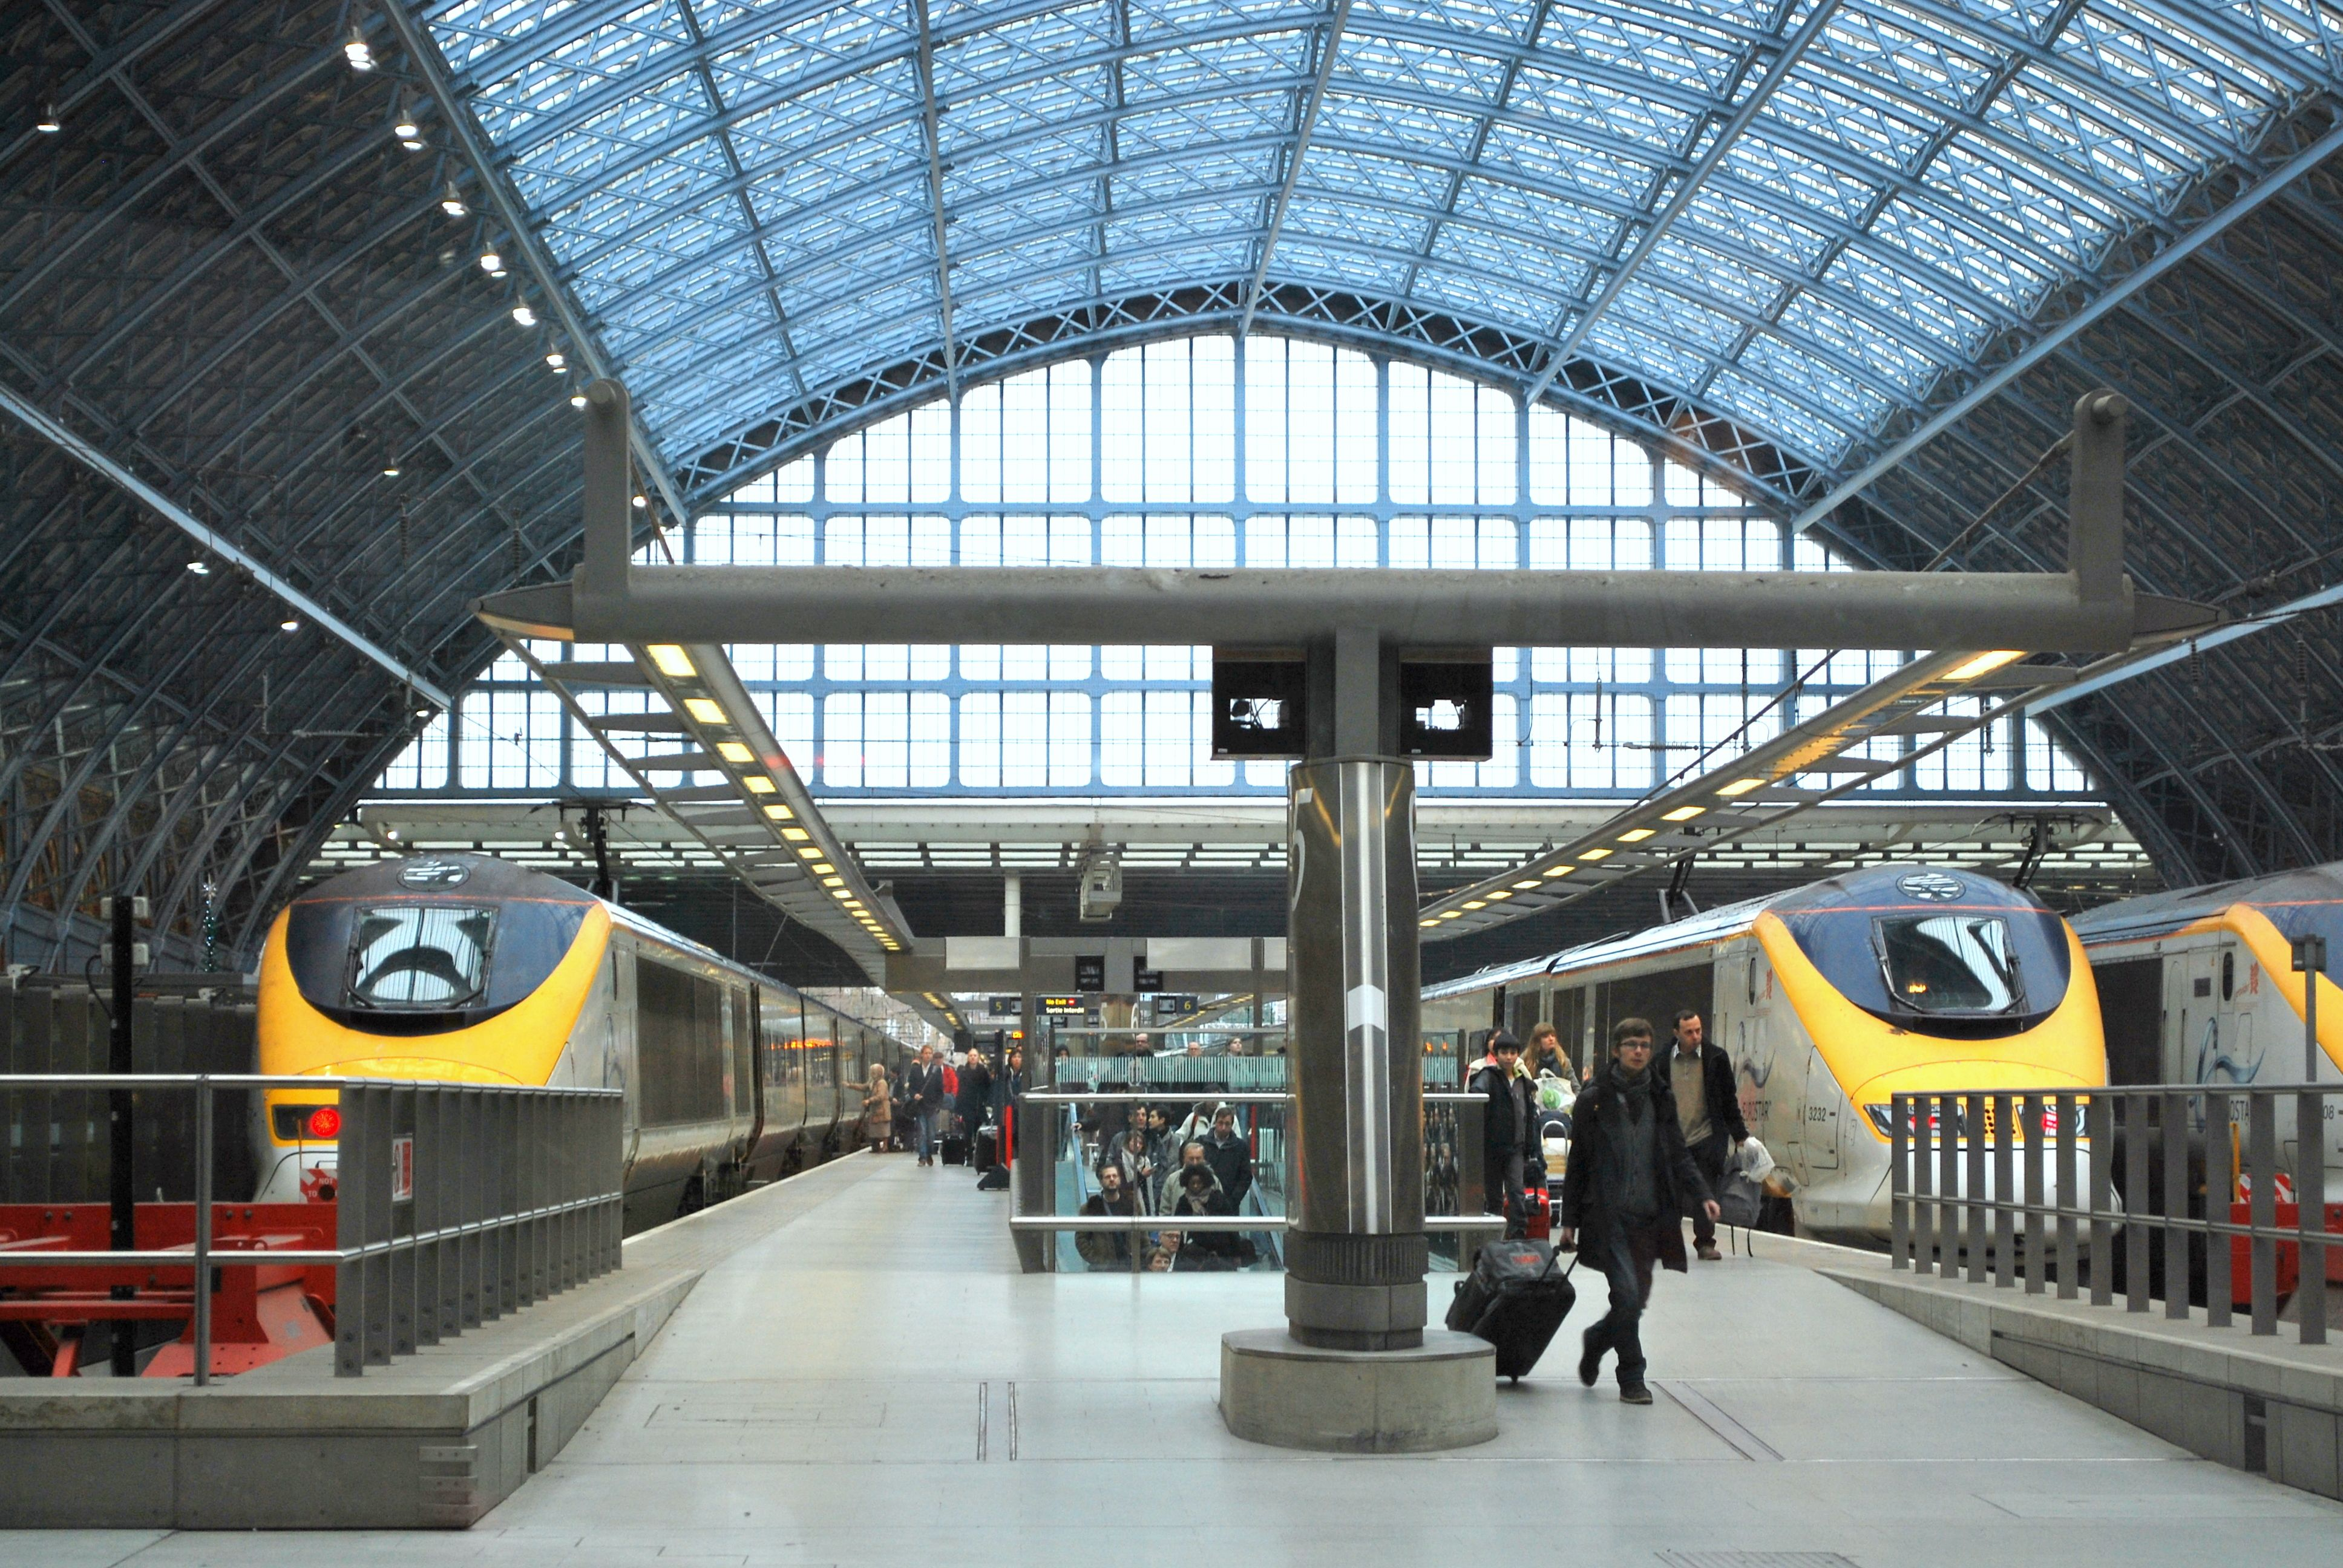 Eurostar Trains Ie The Chunnel At St Pancras Station - Chunnel tickets london to paris